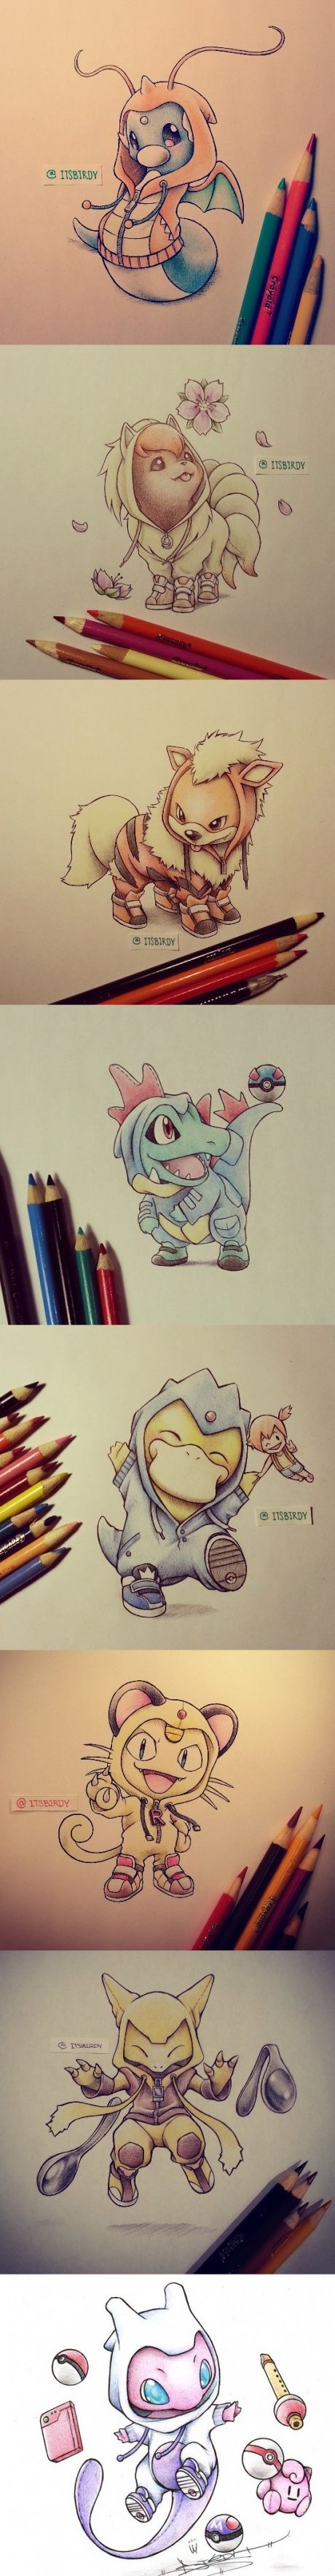 Pokemon in Onesies PART II by itsbirdy http://instagram.com/itsbirdy/# way too cute